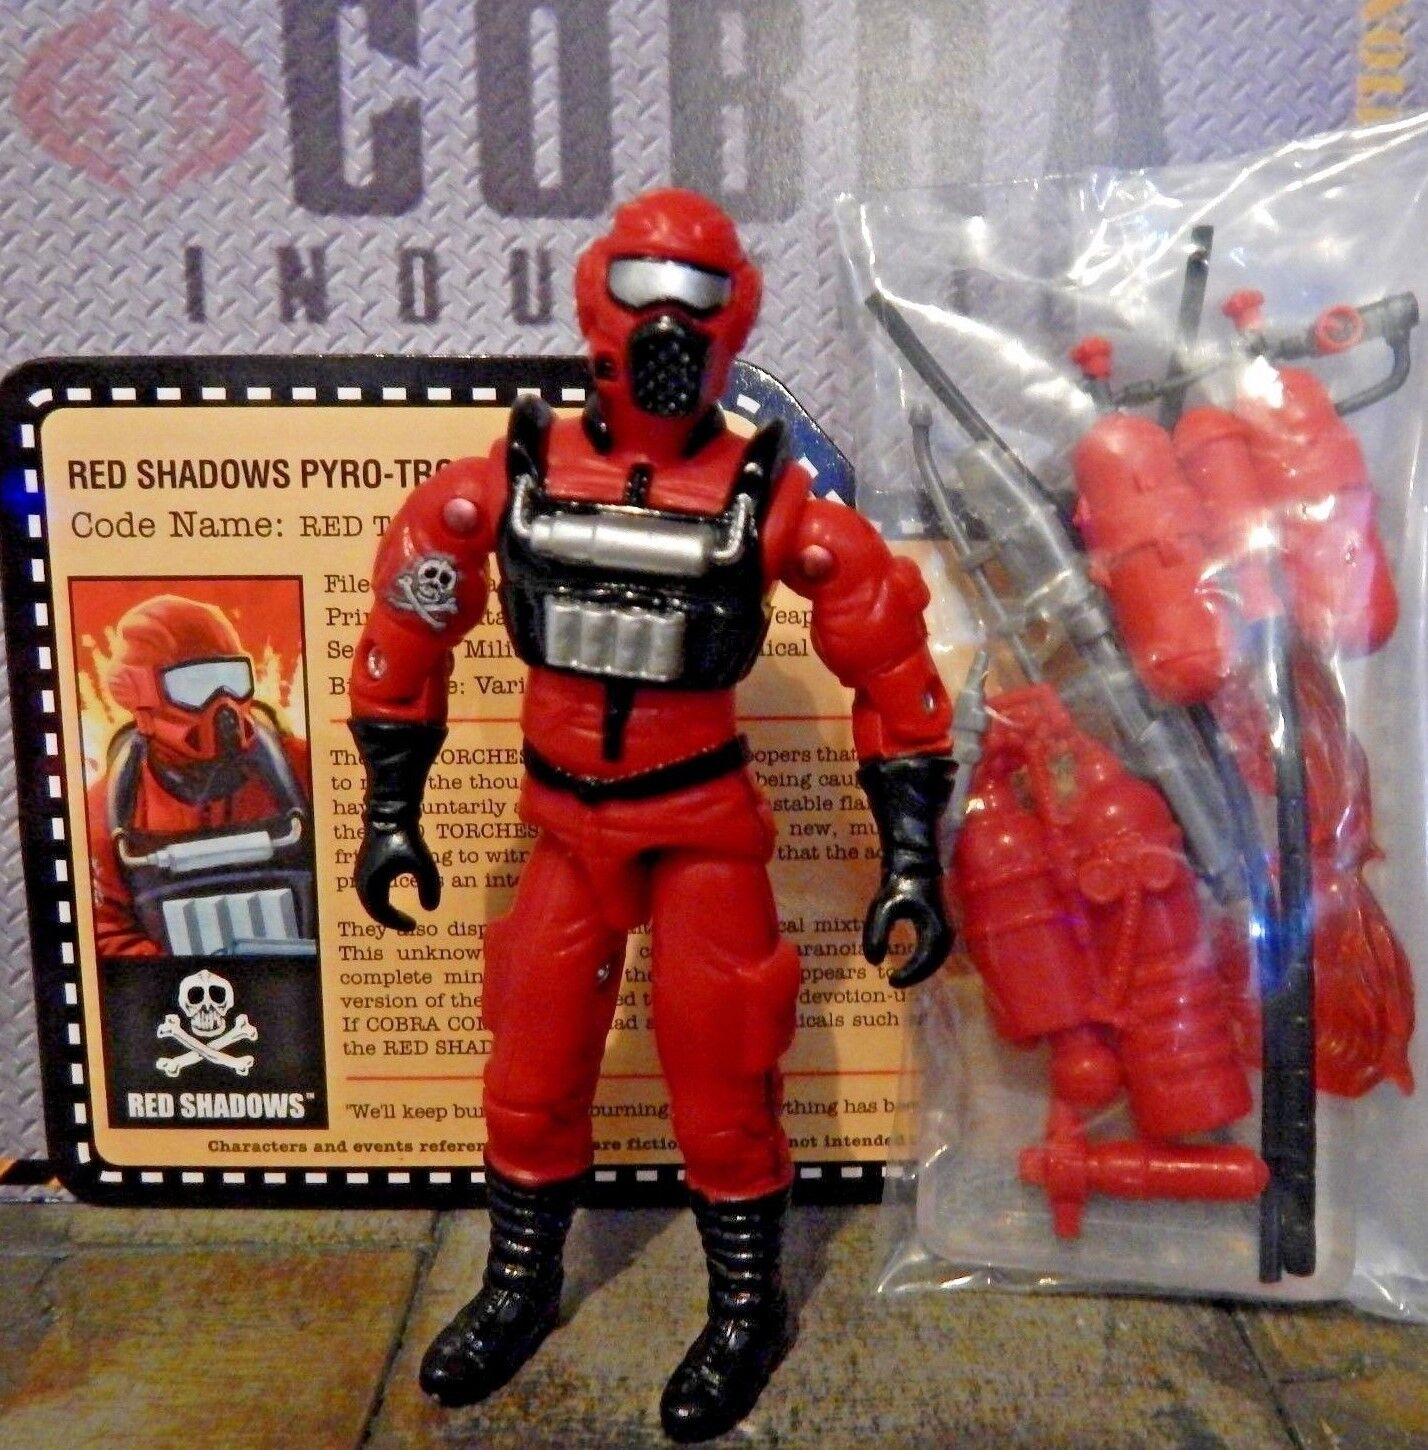 GI JOE  2010 ROT TORCHES  ROT SHADOWS PYRO-TROOPER  VACATION IN THE SHADOWS